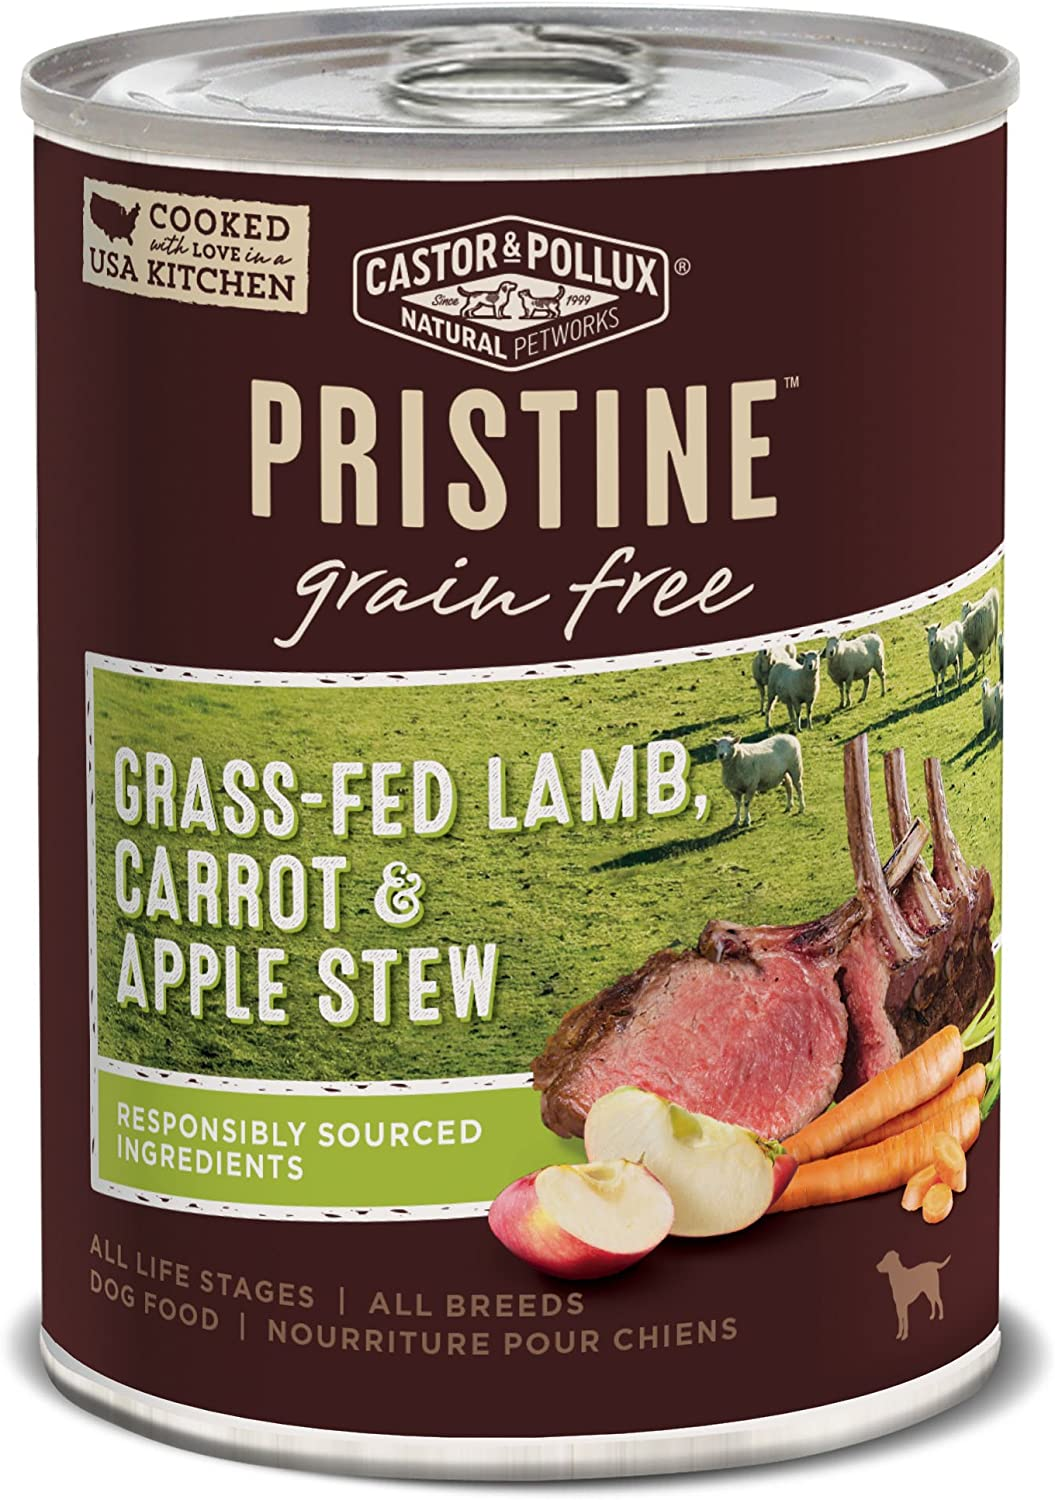 Castor & Pollux Pristine Grain Free Grass-Fed Lamb, Carrot & Apple Stew Canned Dog Food, (12) 12..7oz cans